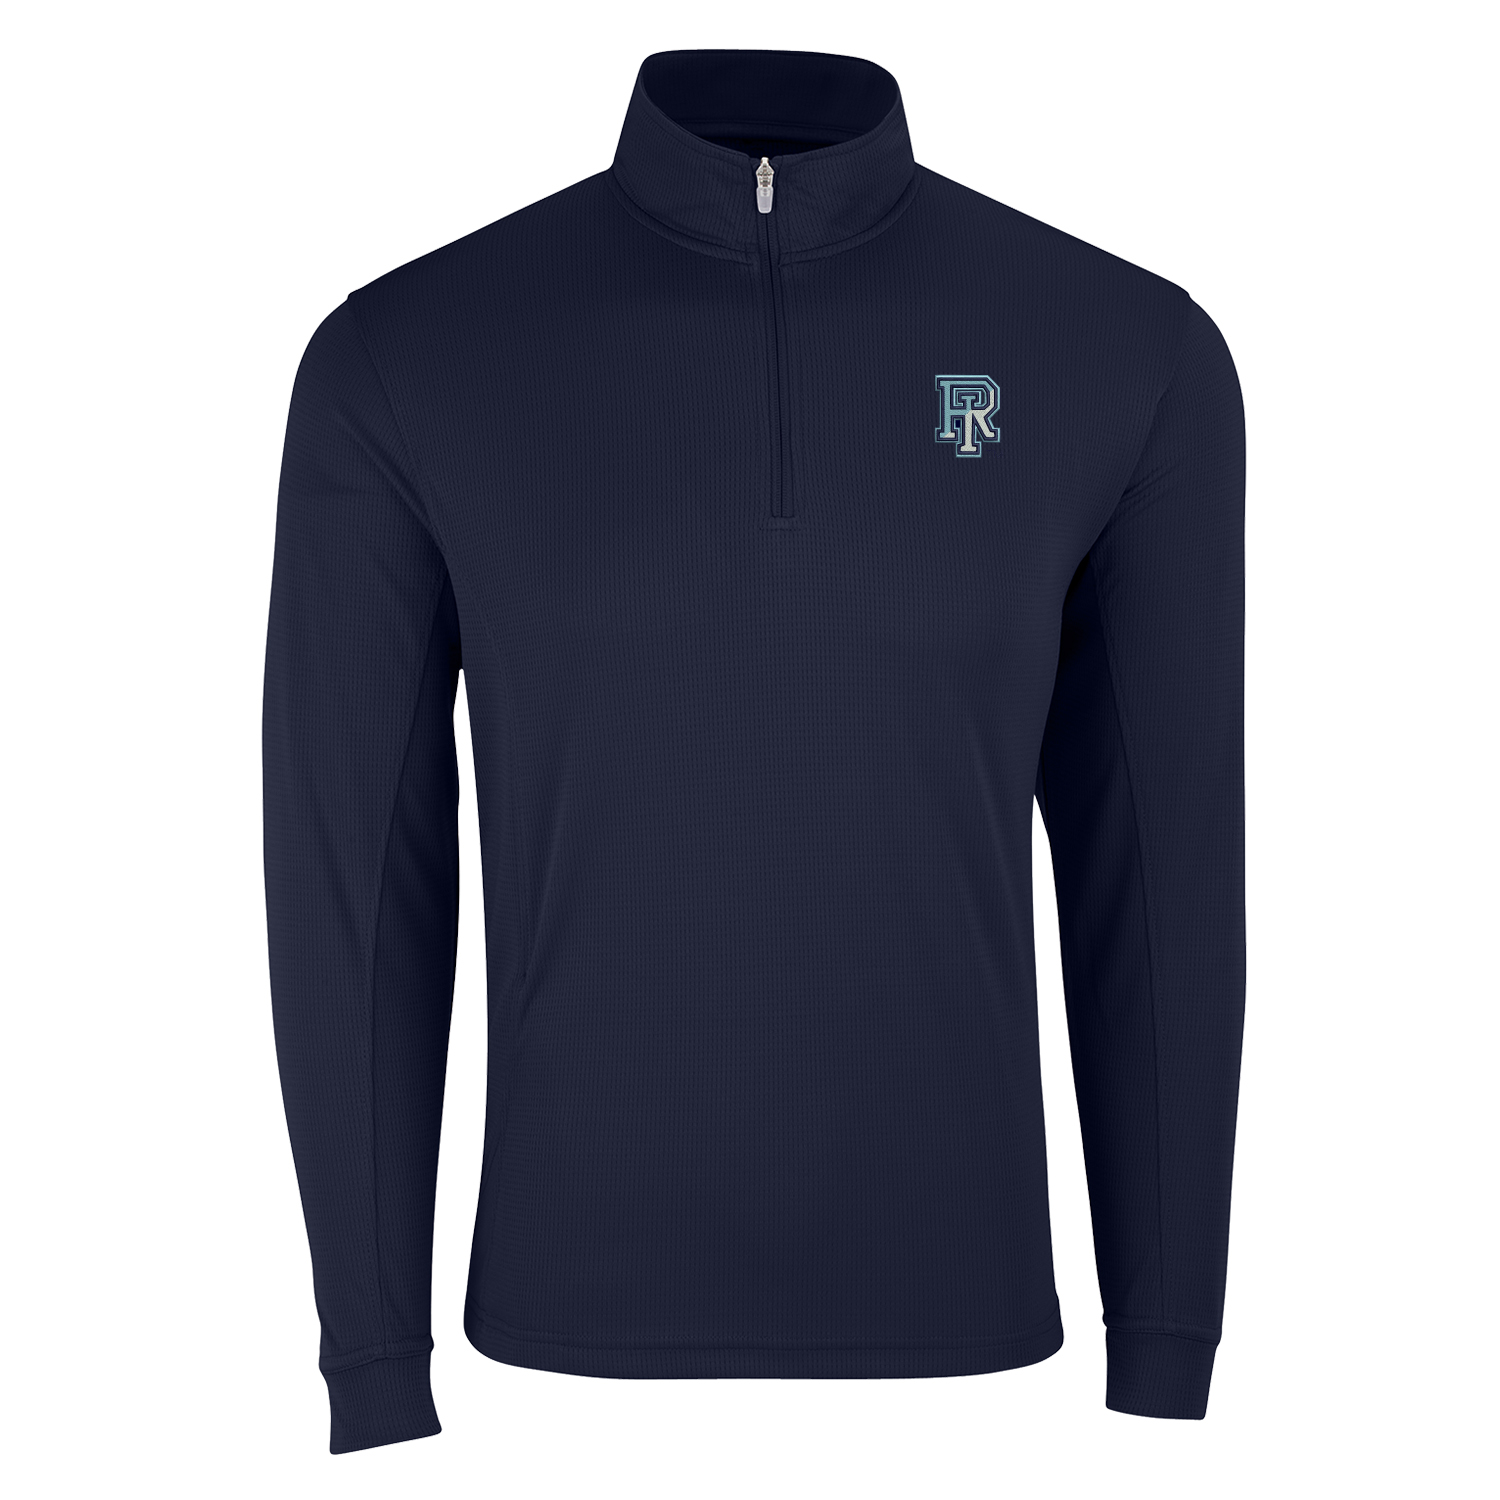 Cover Image For Vansport 1/4 Zip Tech Pullover